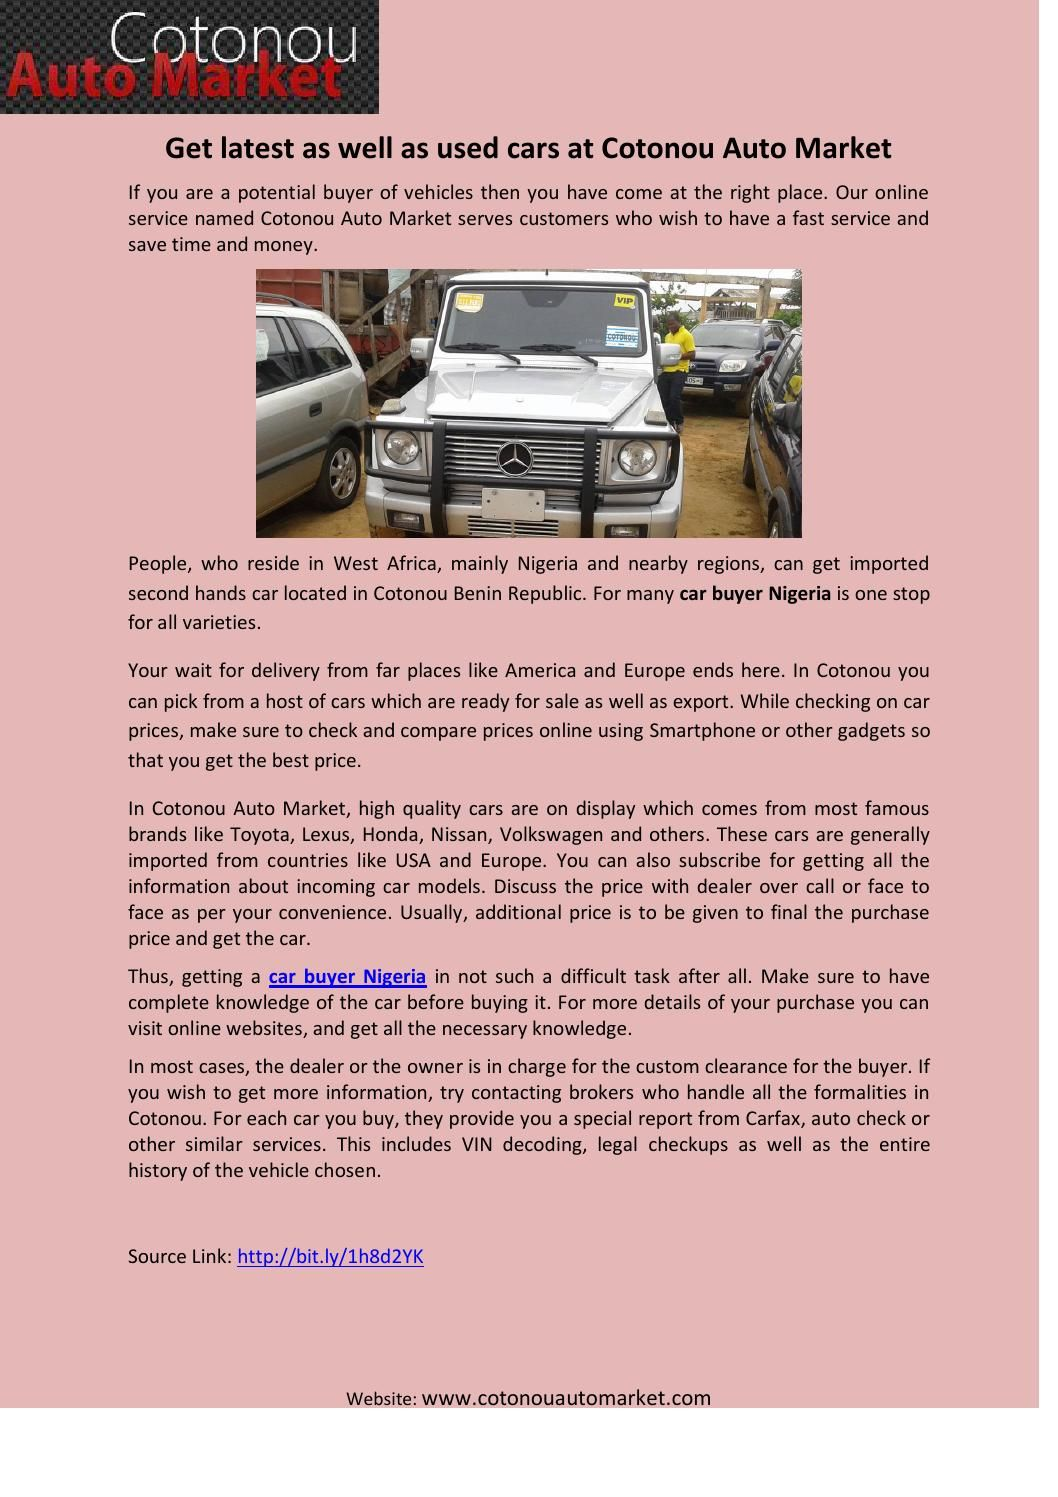 Get latest as well as used cars at Cotonou Auto Market | Cars